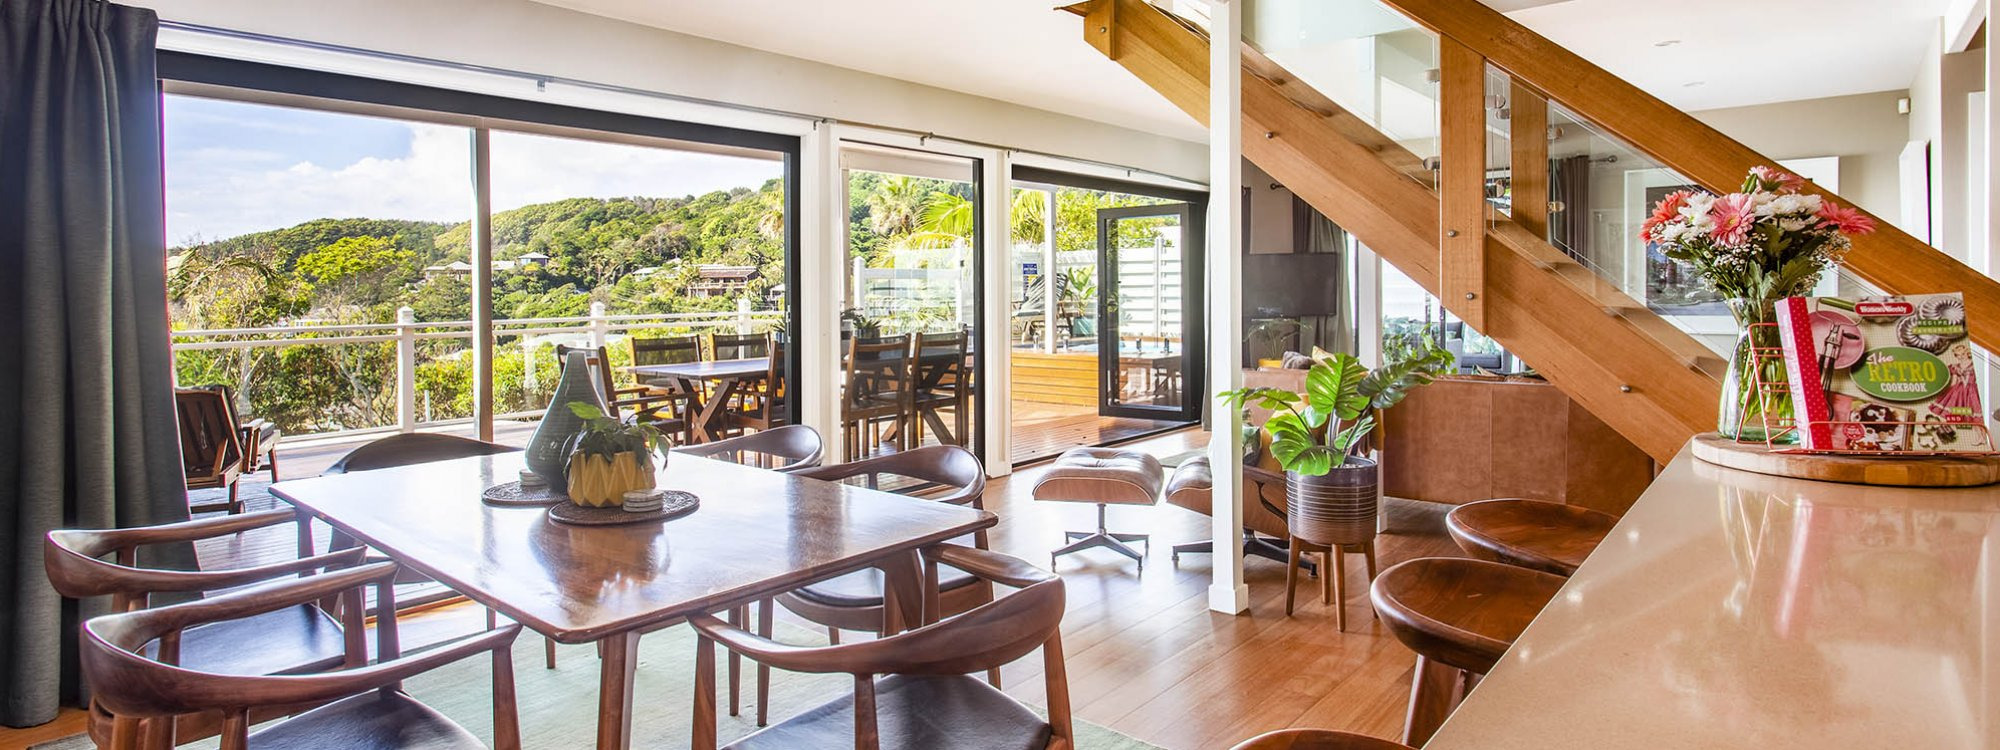 The Palms at Byron - Byron Bay - Dining Area